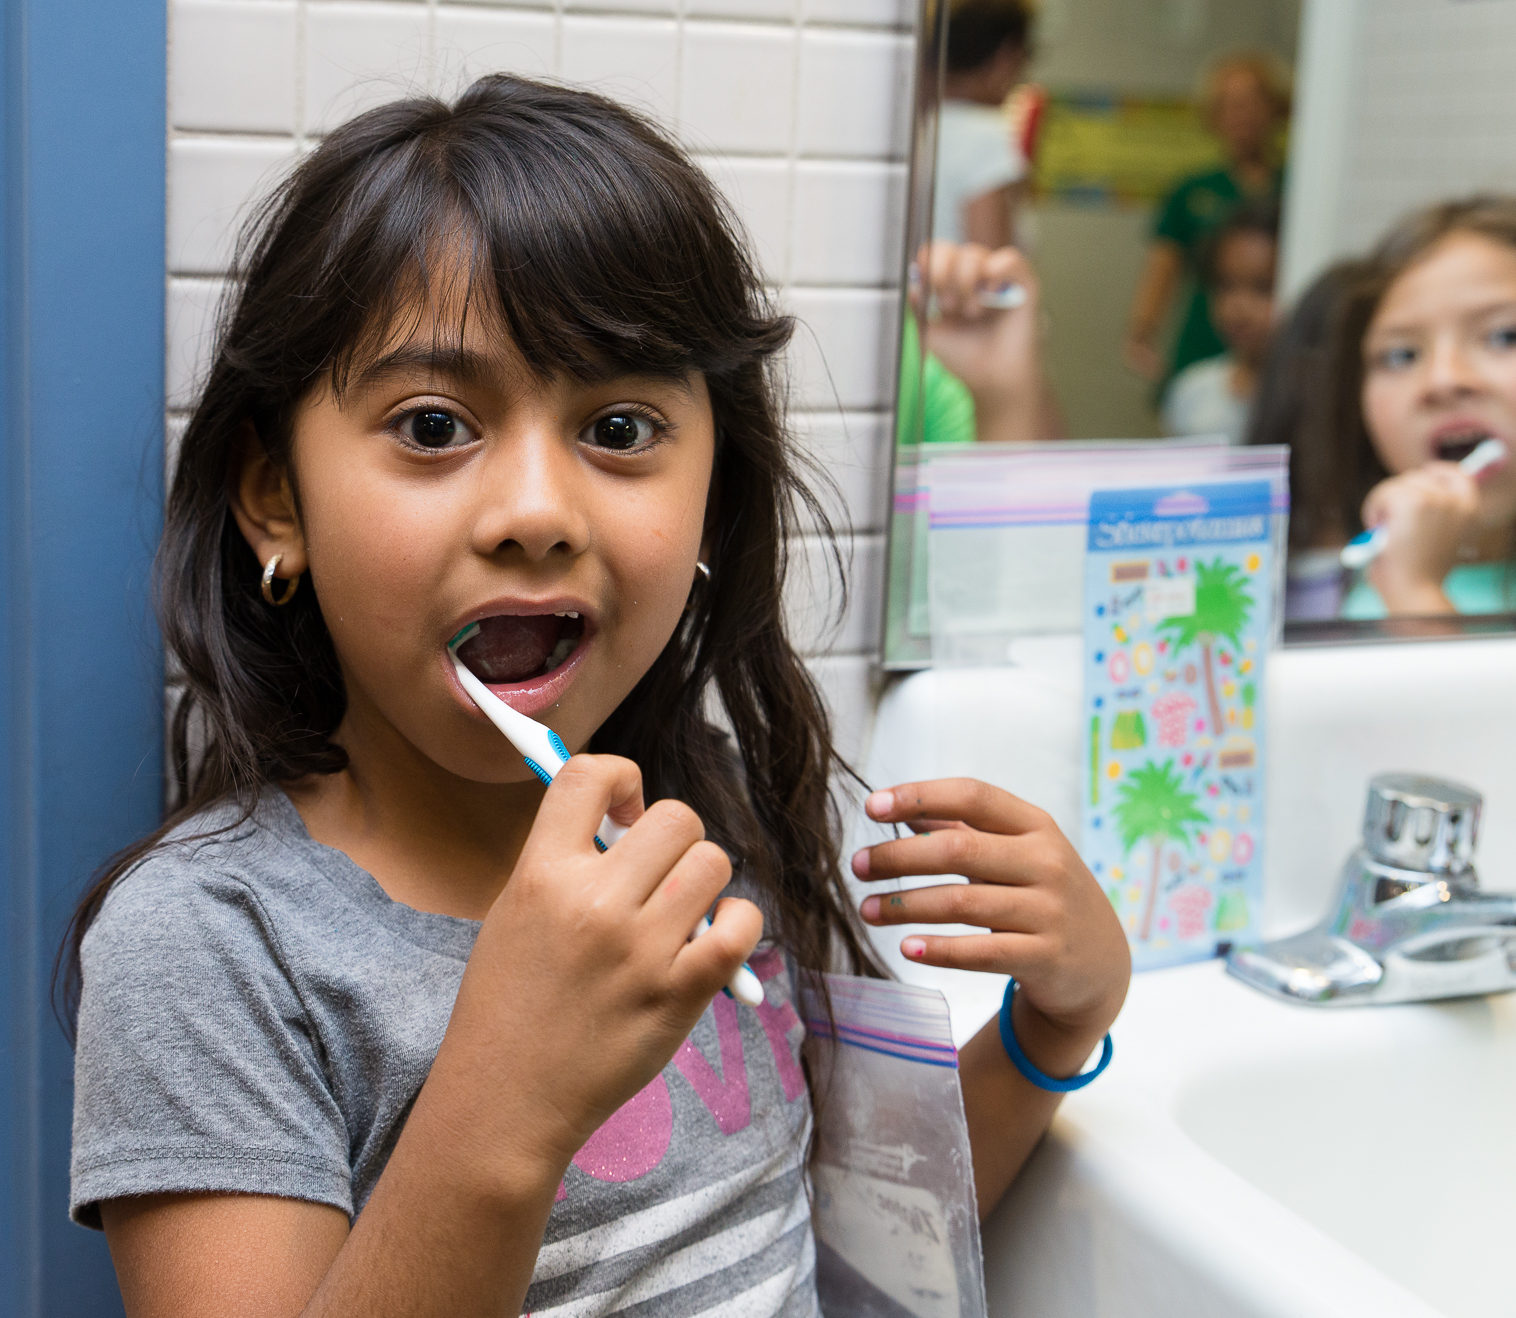 Future Smiles girl brushes her teeth.